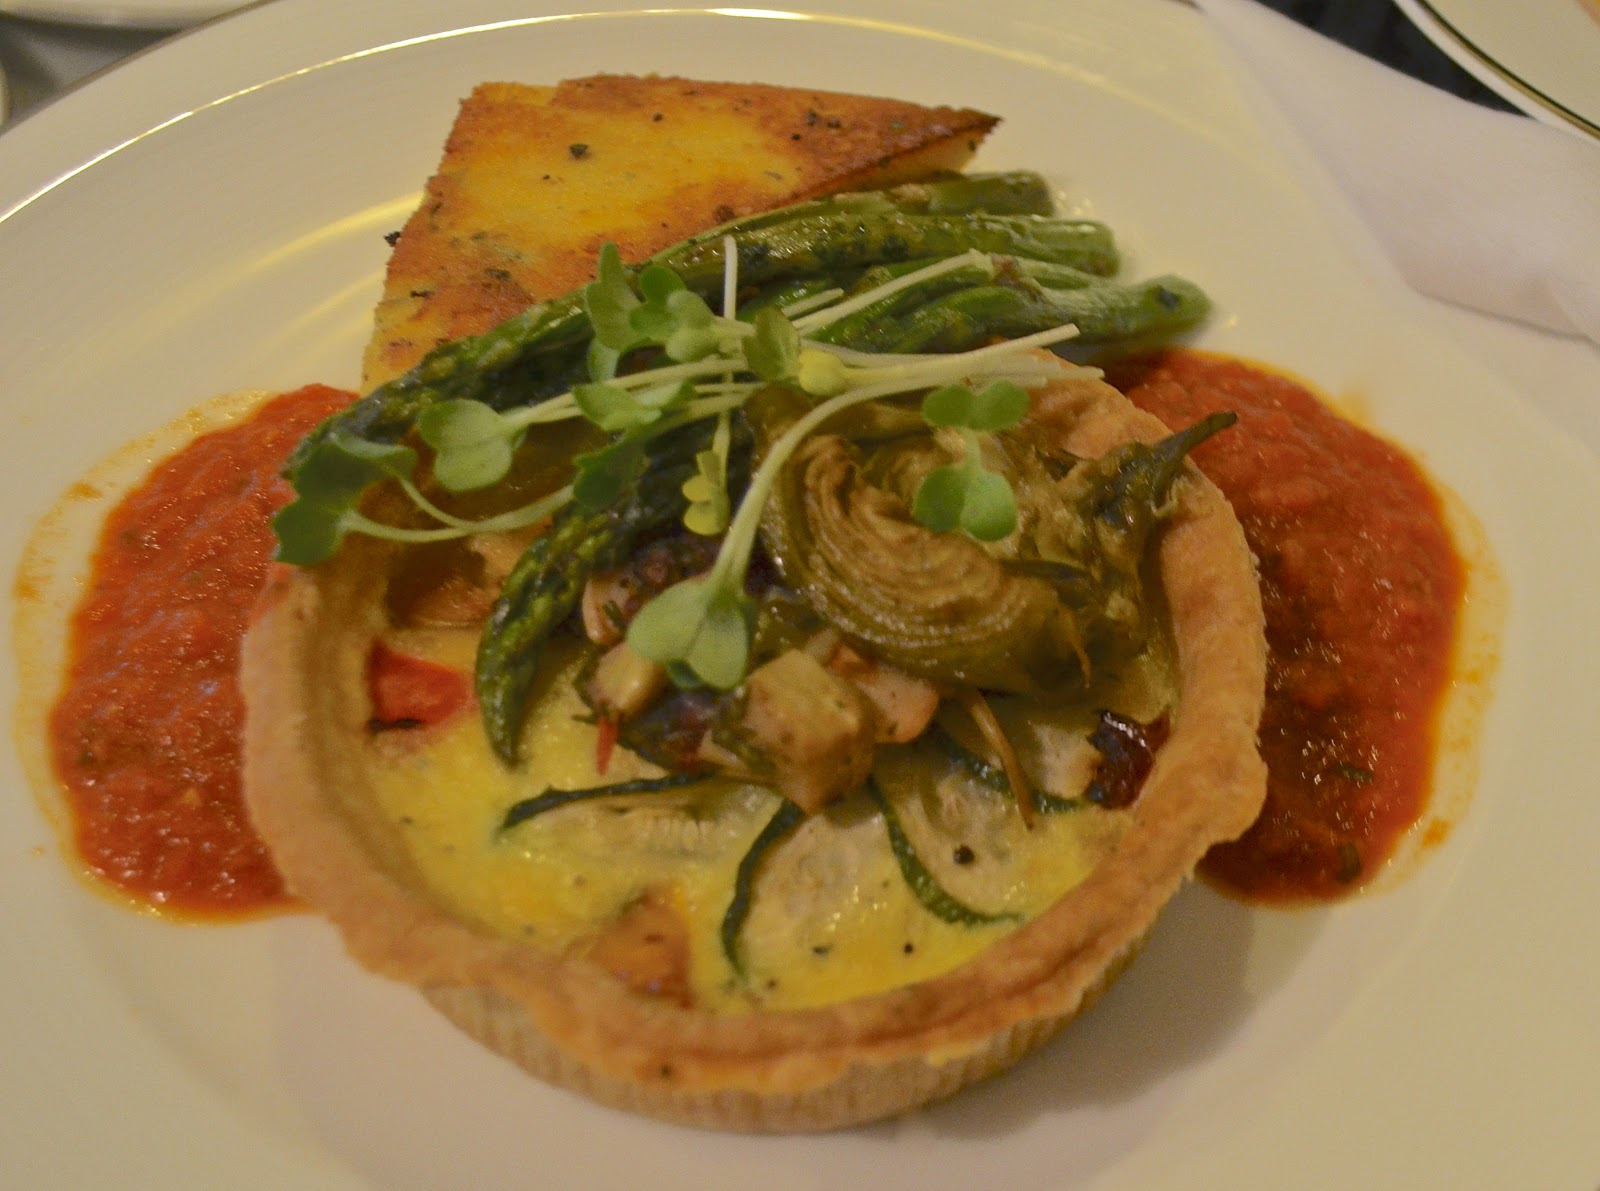 Tart baked in Rosemary Olive Crust with a Roasted Tomato Herb Sauce